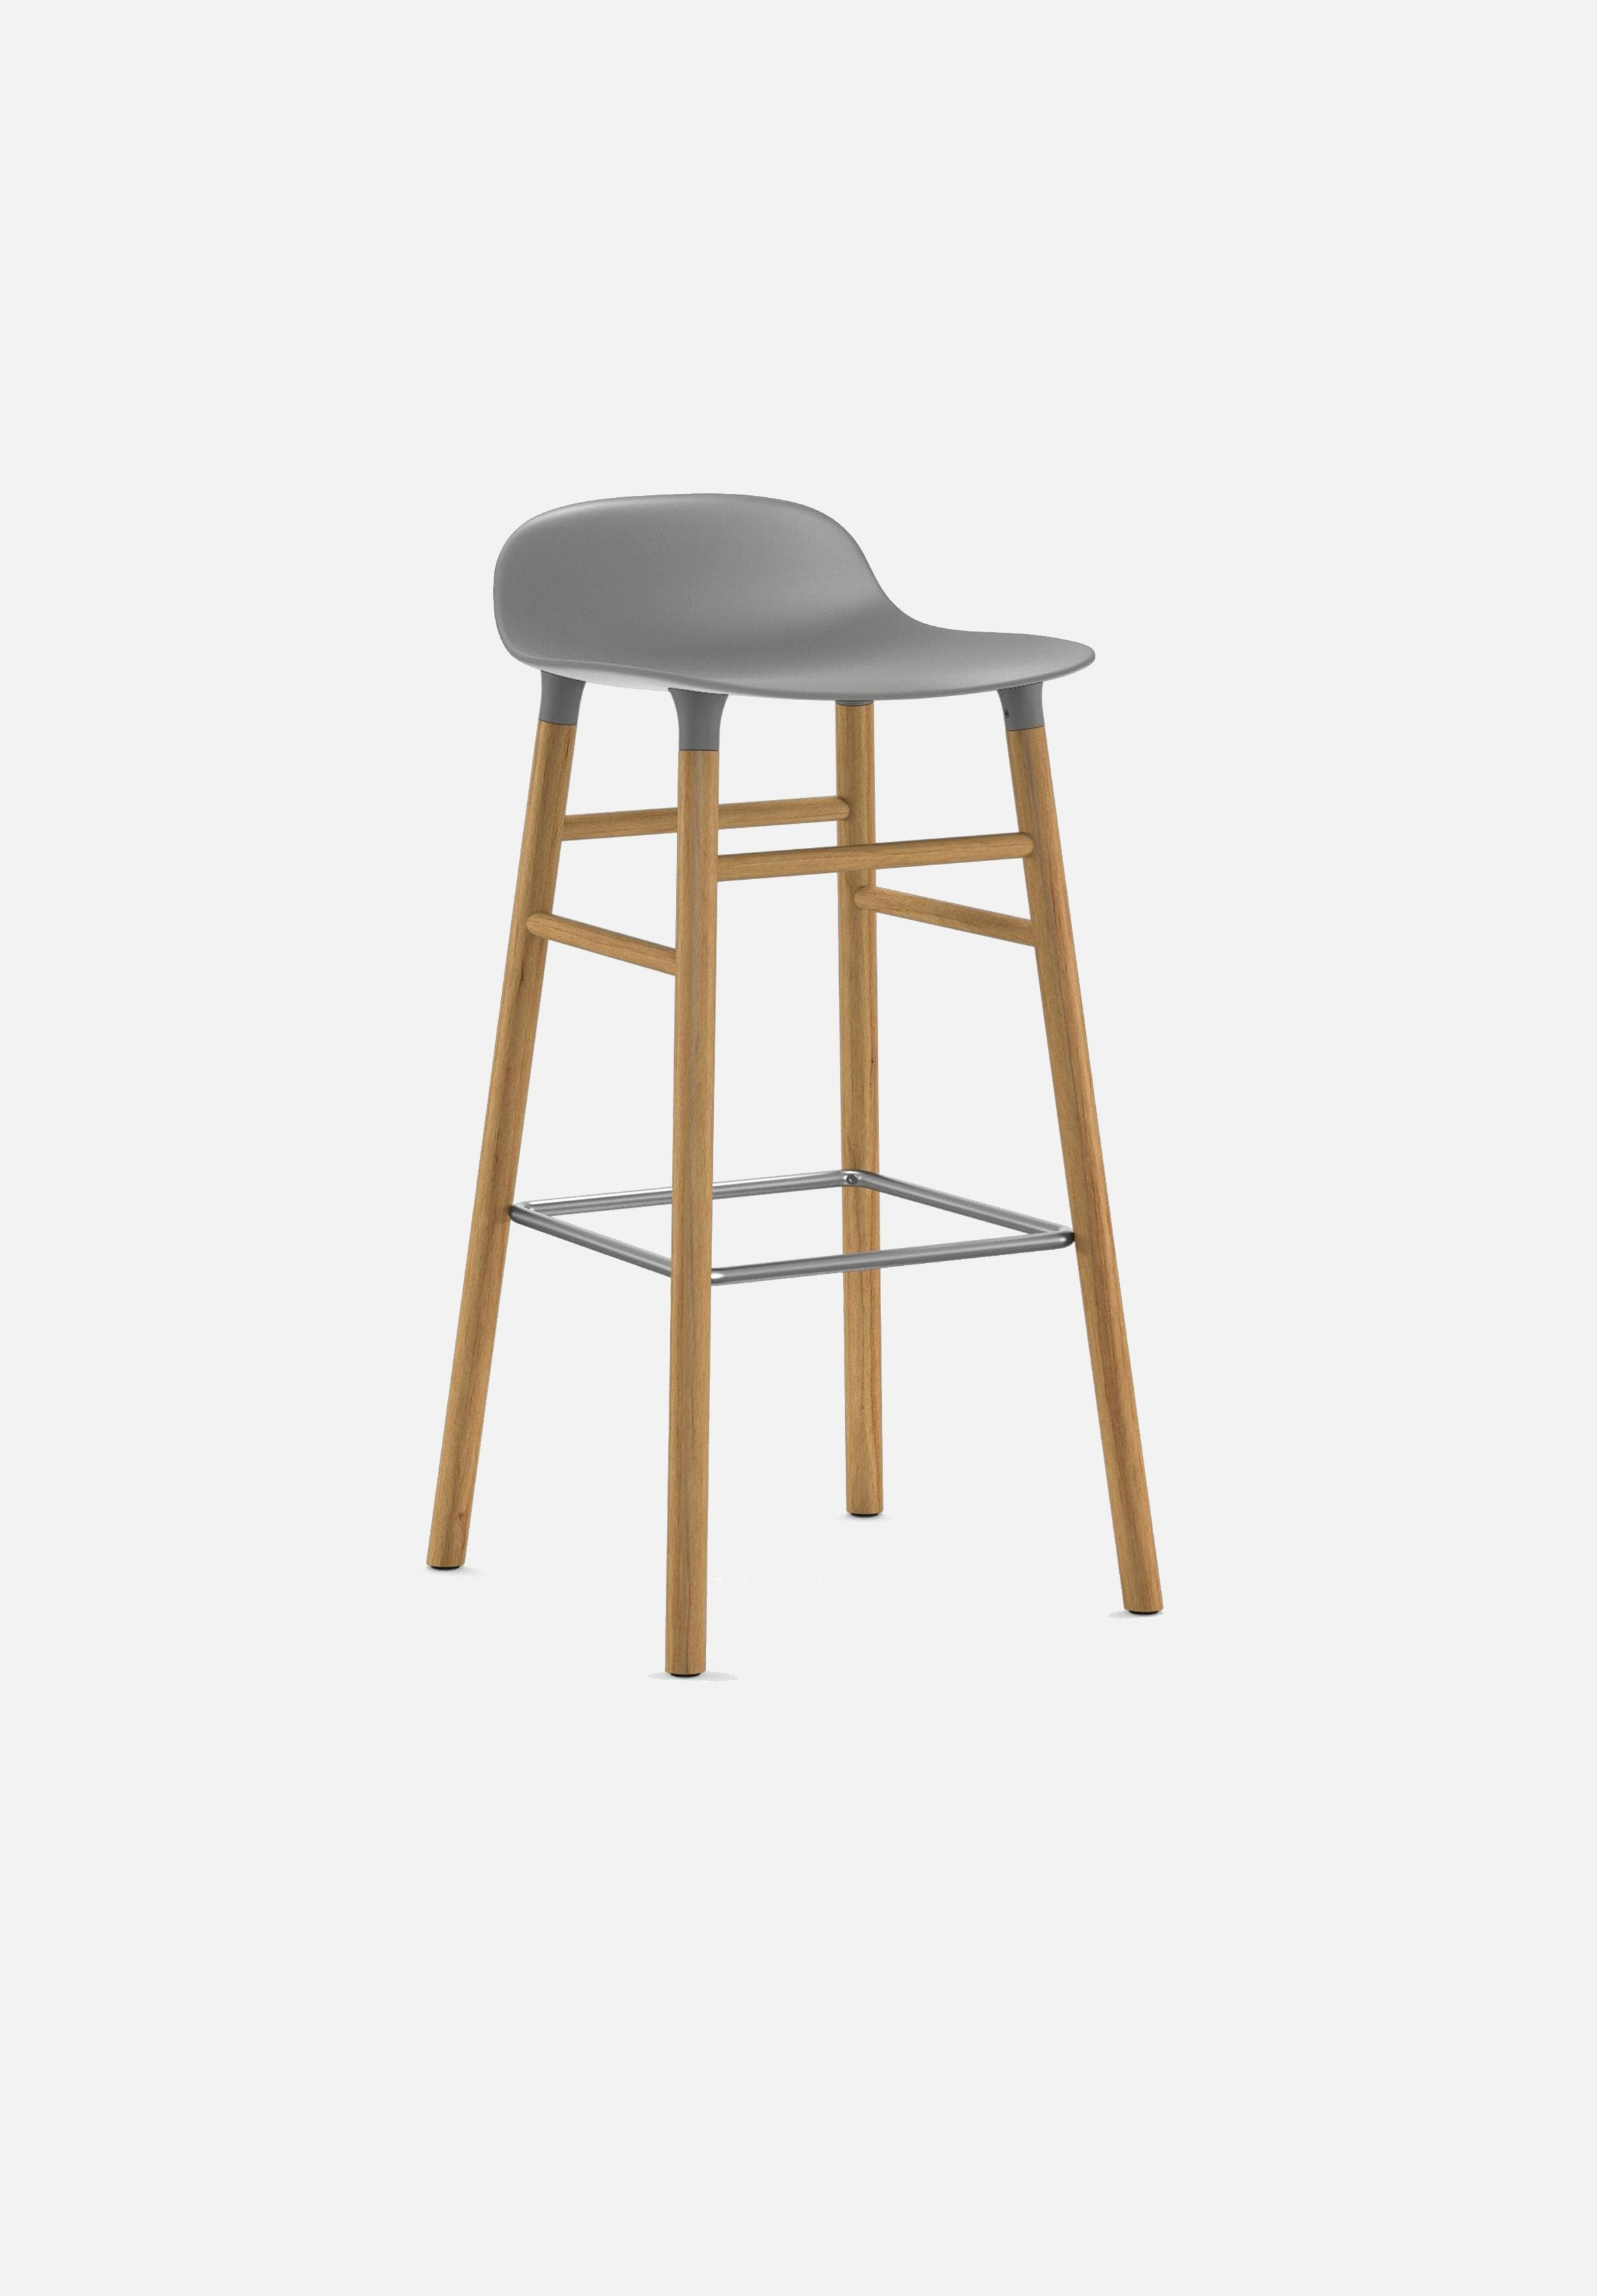 Form Stool — 75cm-Simon Legald-Normann Copenhagen-Grey-Solid Oak-Average-canada-design-store-danish-denmark-furniture-interior